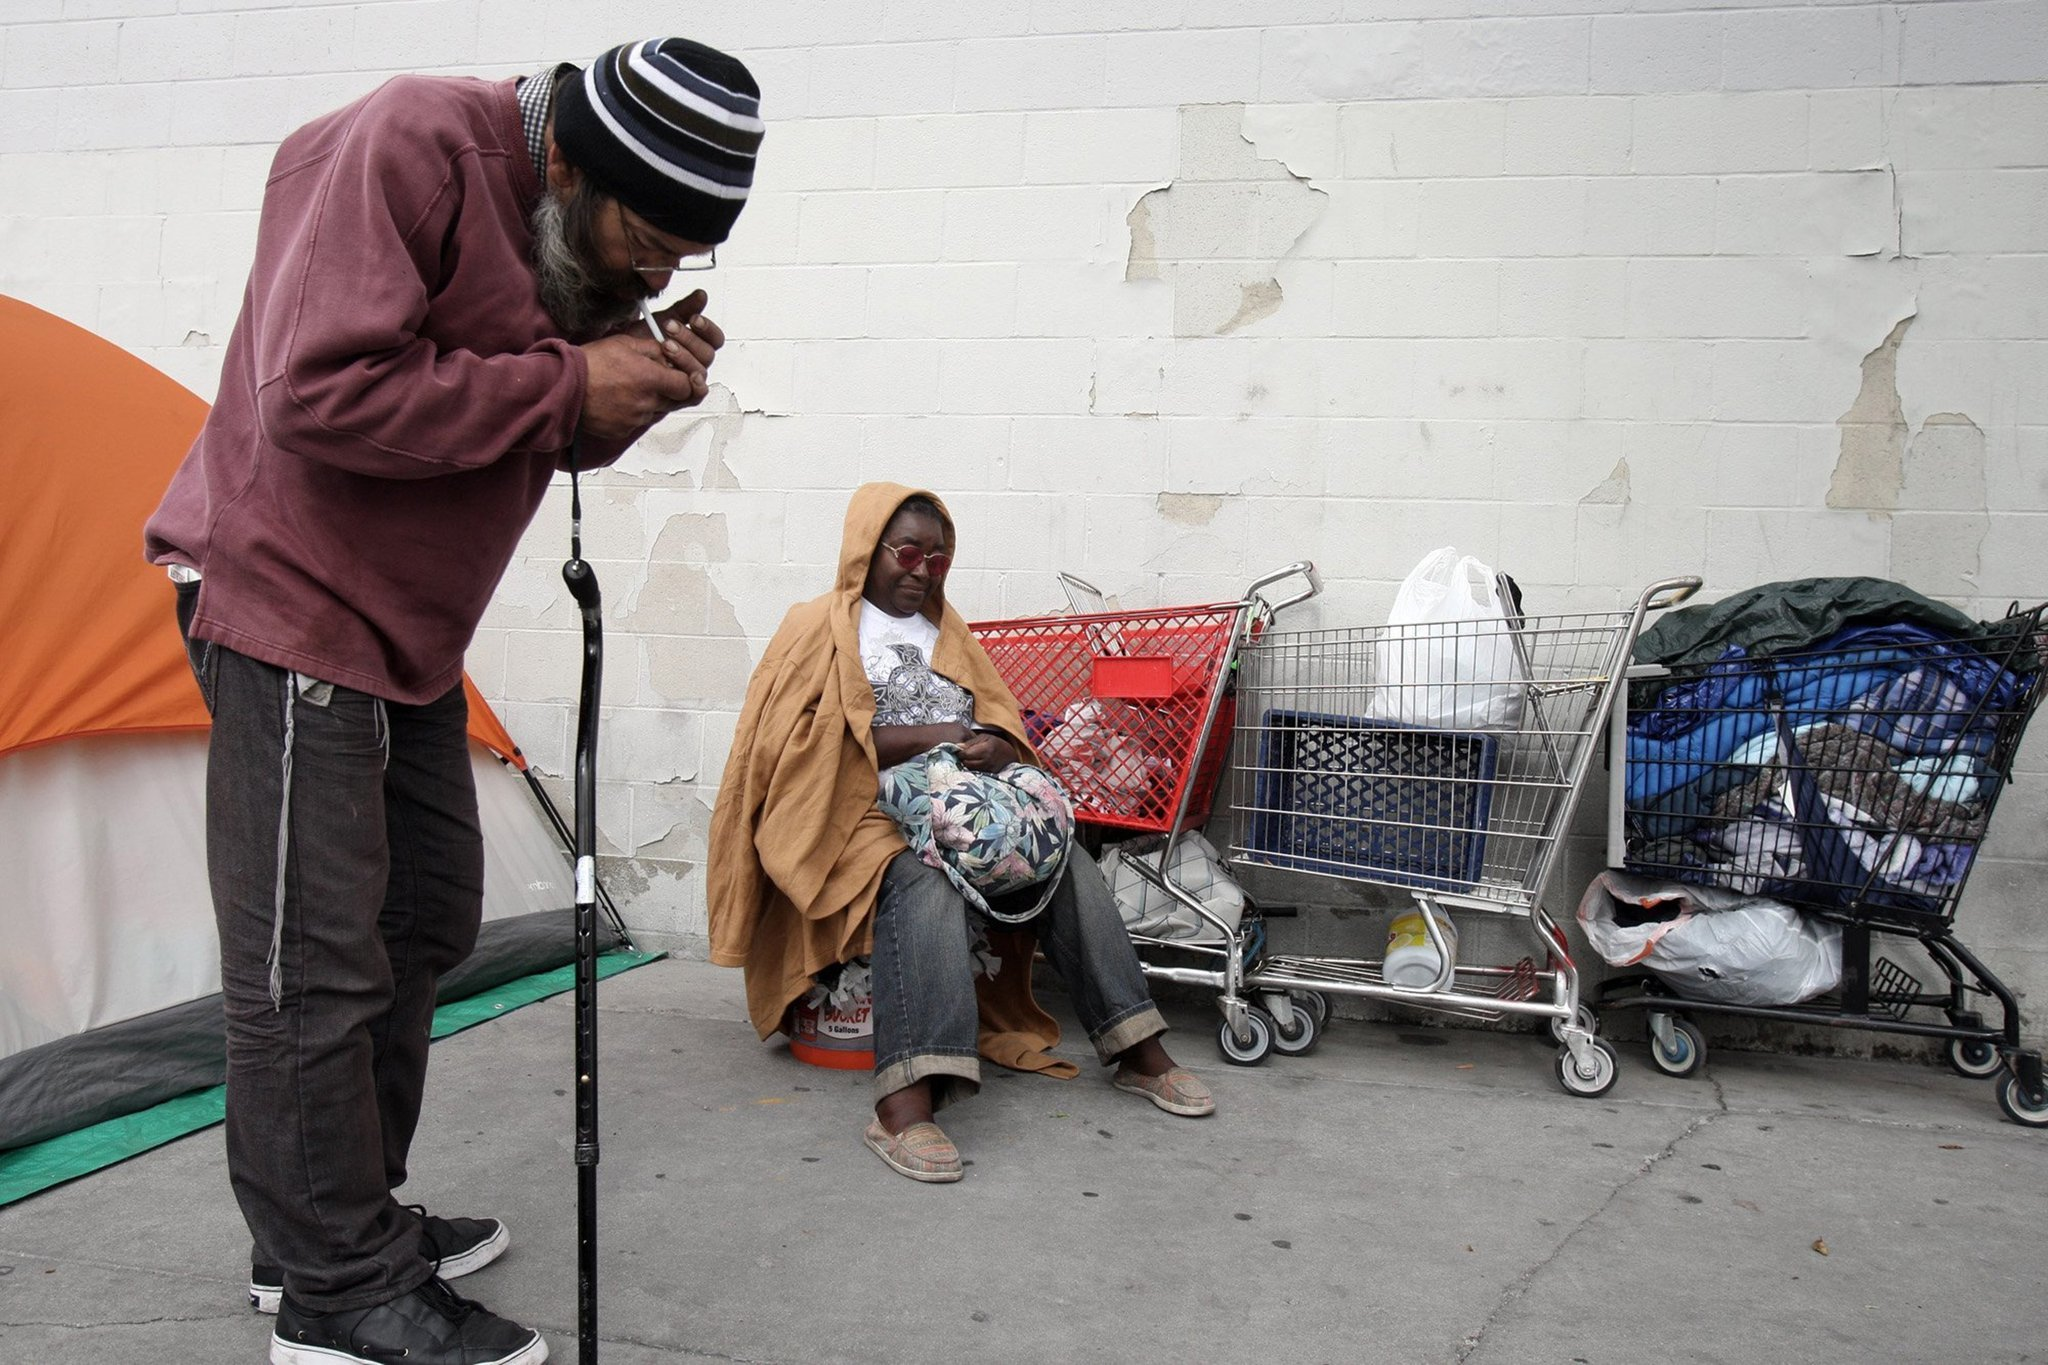 Homelessness up 12% in Los Angeles